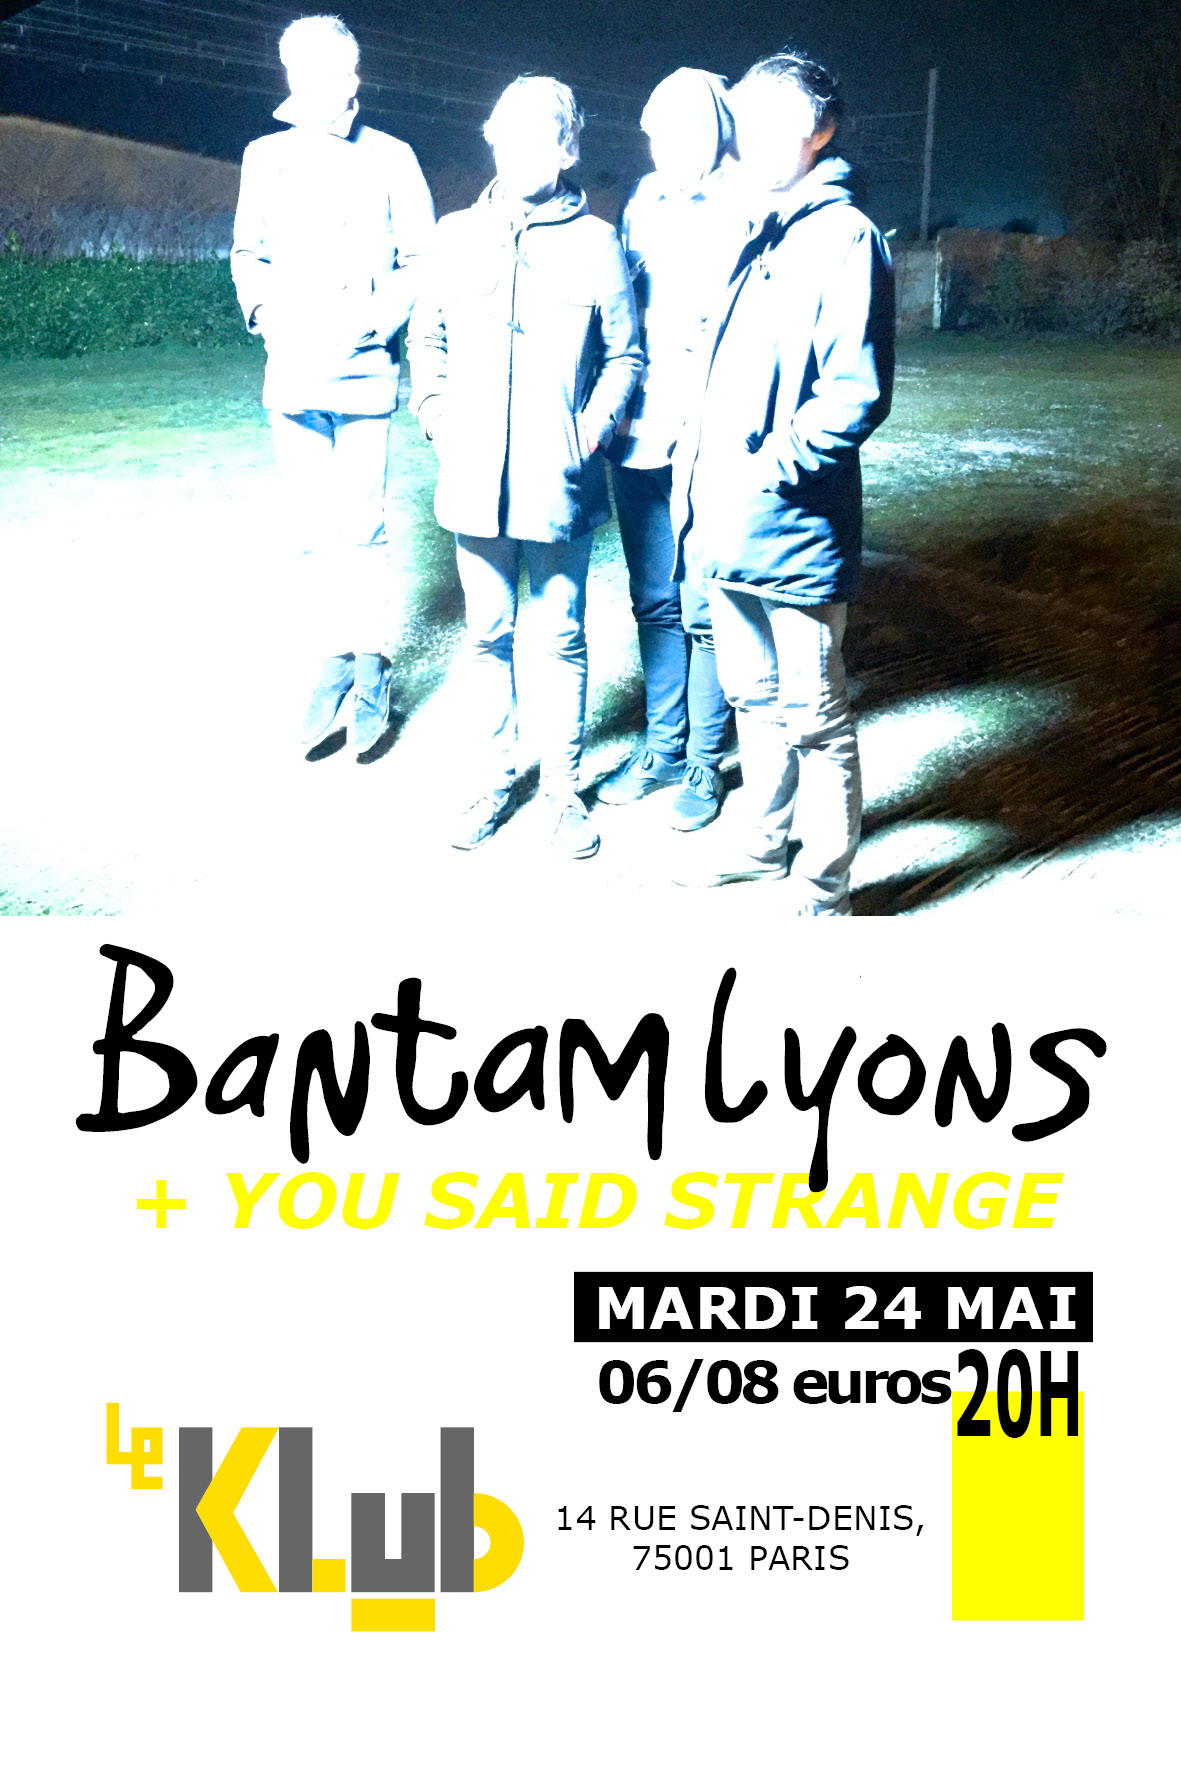 BANTAM LYONS + YOU SAID STRANGE